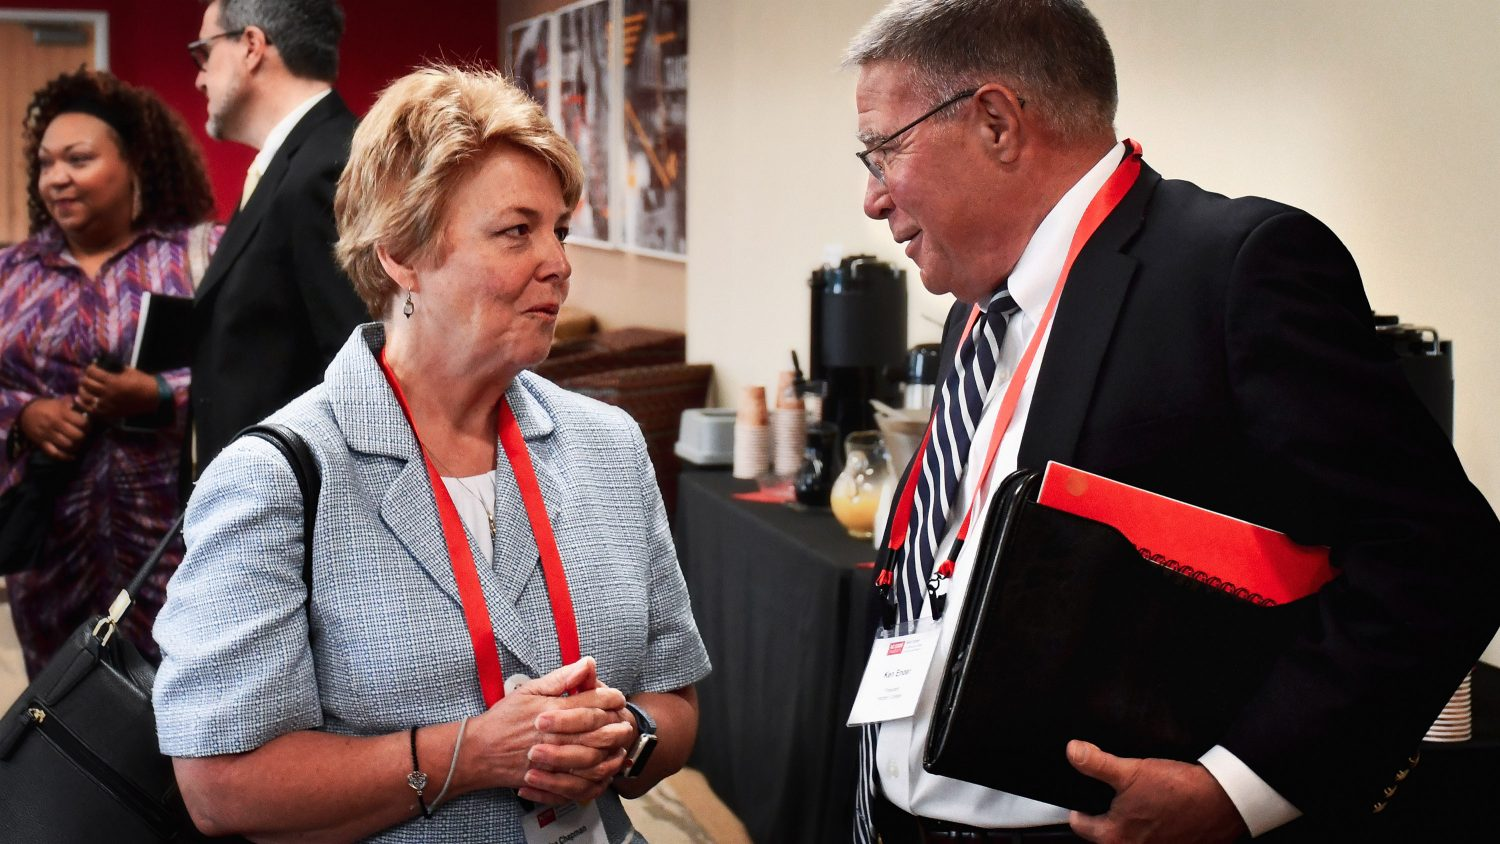 Two community college leaders talk during the statewide leadership conference on community college's impact on economic mobility.